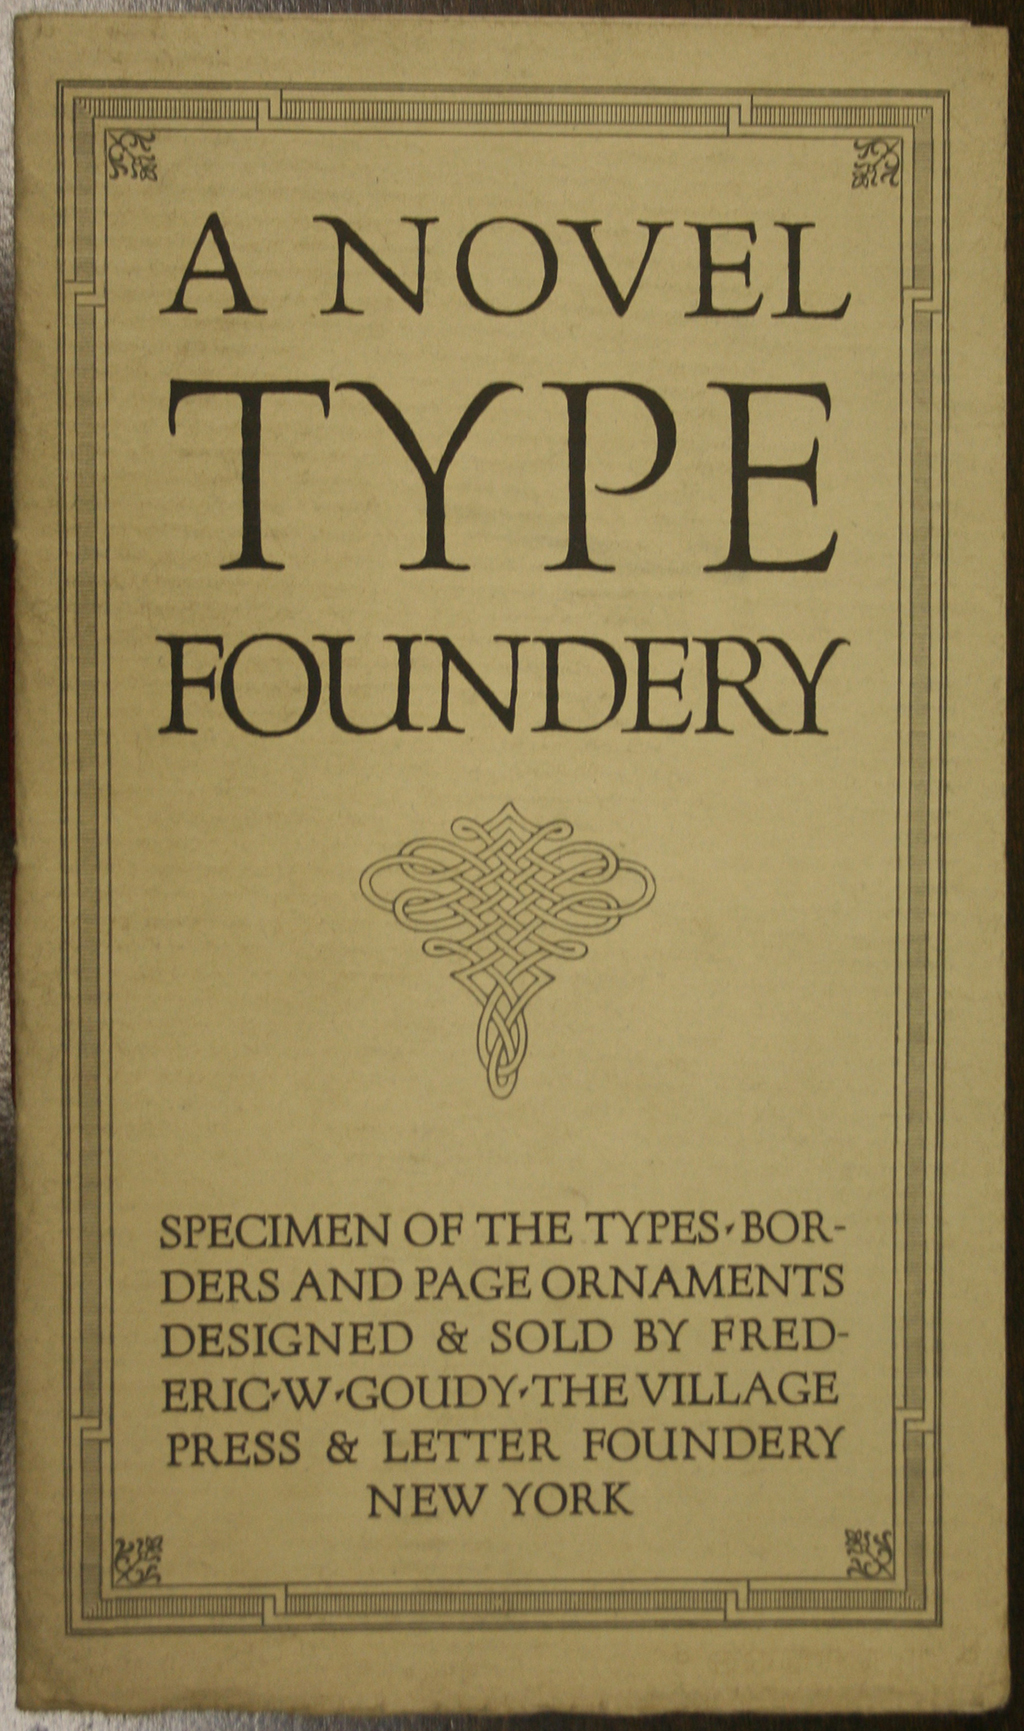 A Novel Type Foundery (1914).